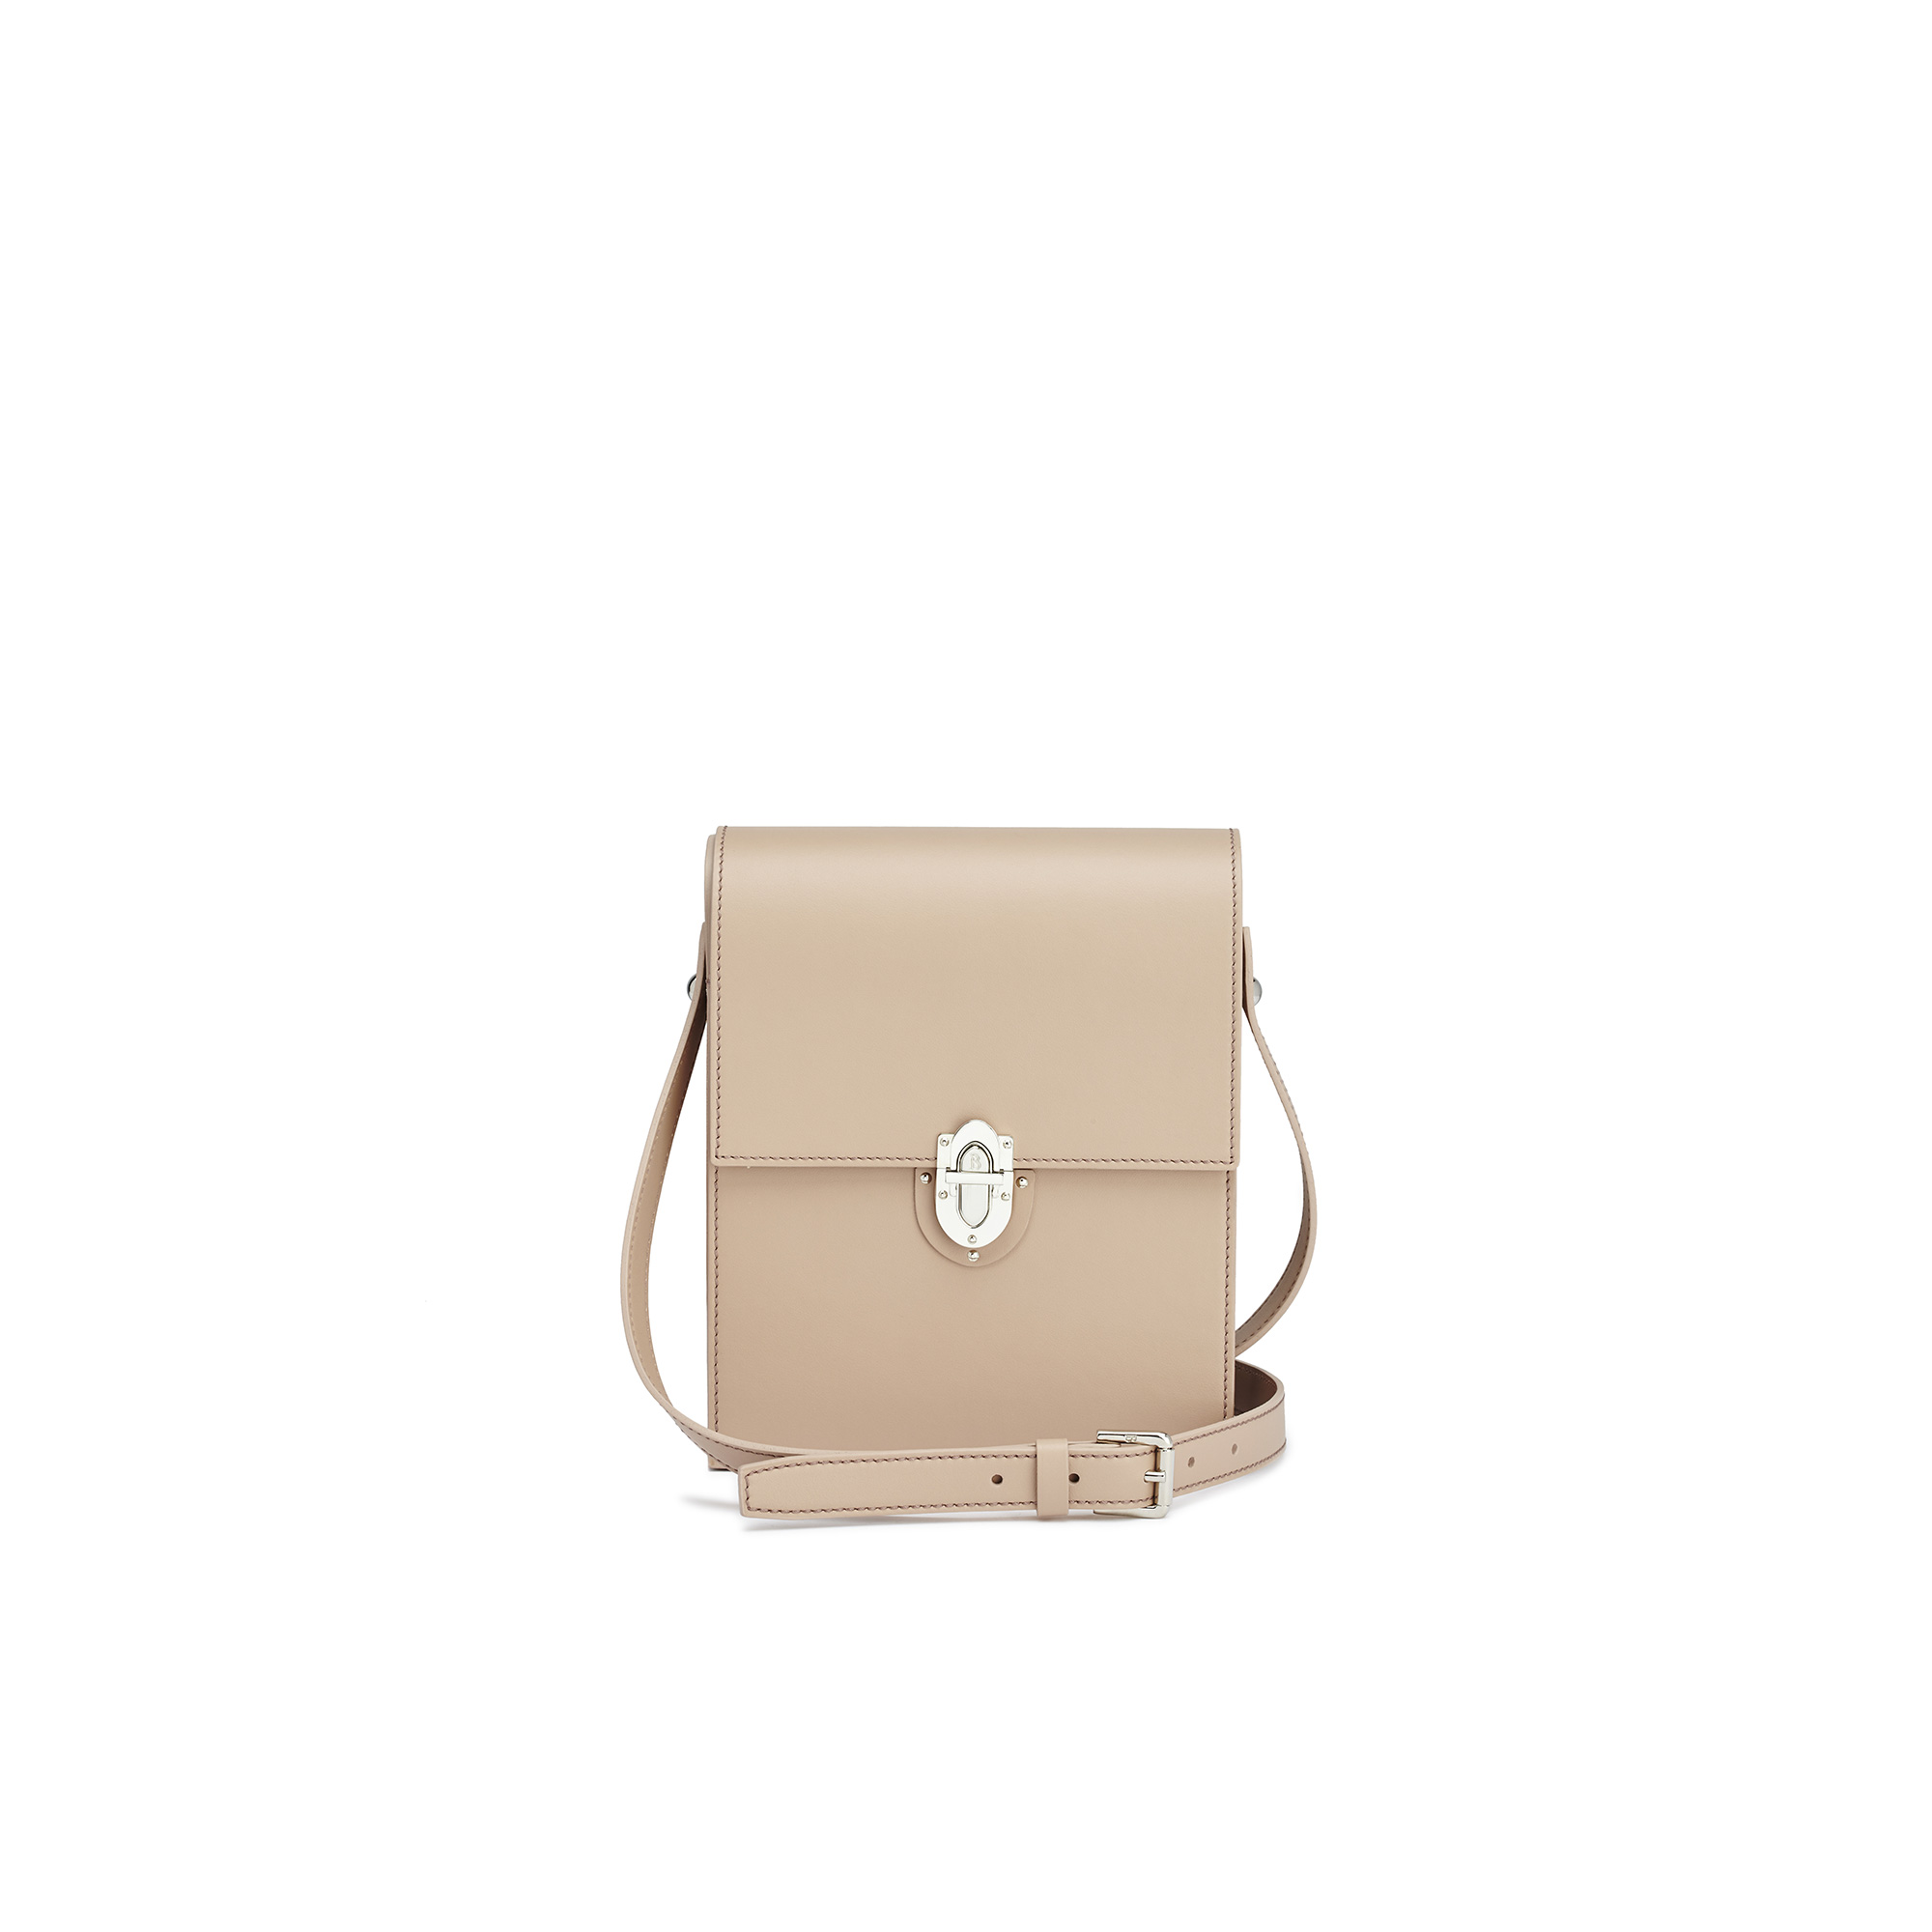 Gigi-nude-french-calf-bag-Bertoni-1949